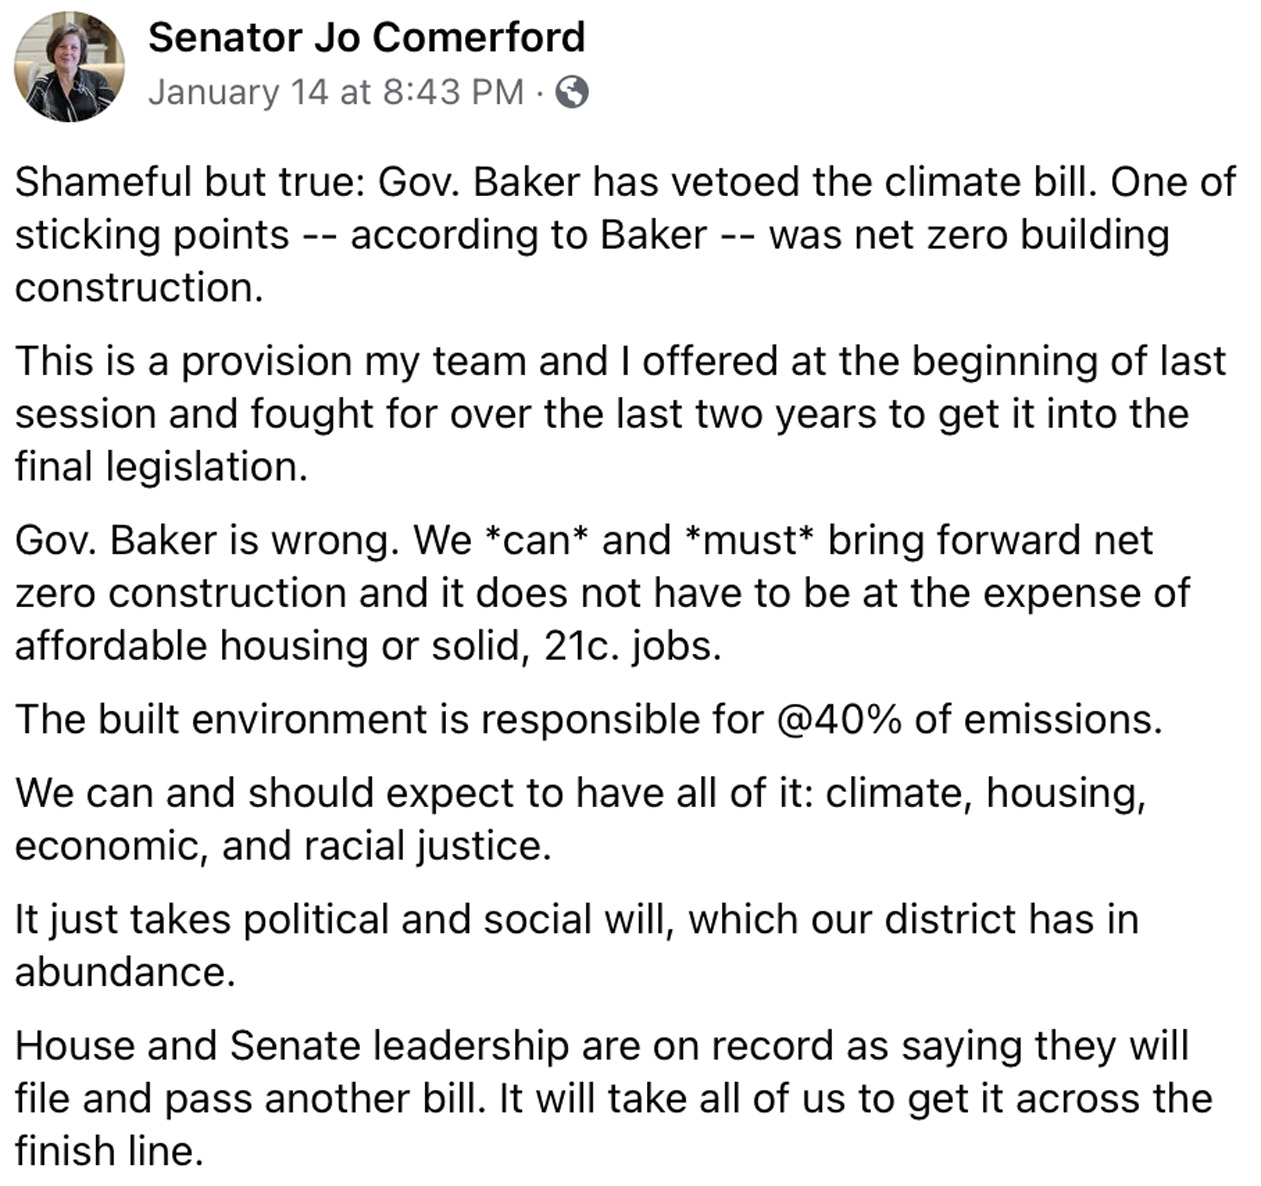 Governor Baker, sign the climate bill. Contact him by Feb. 7th